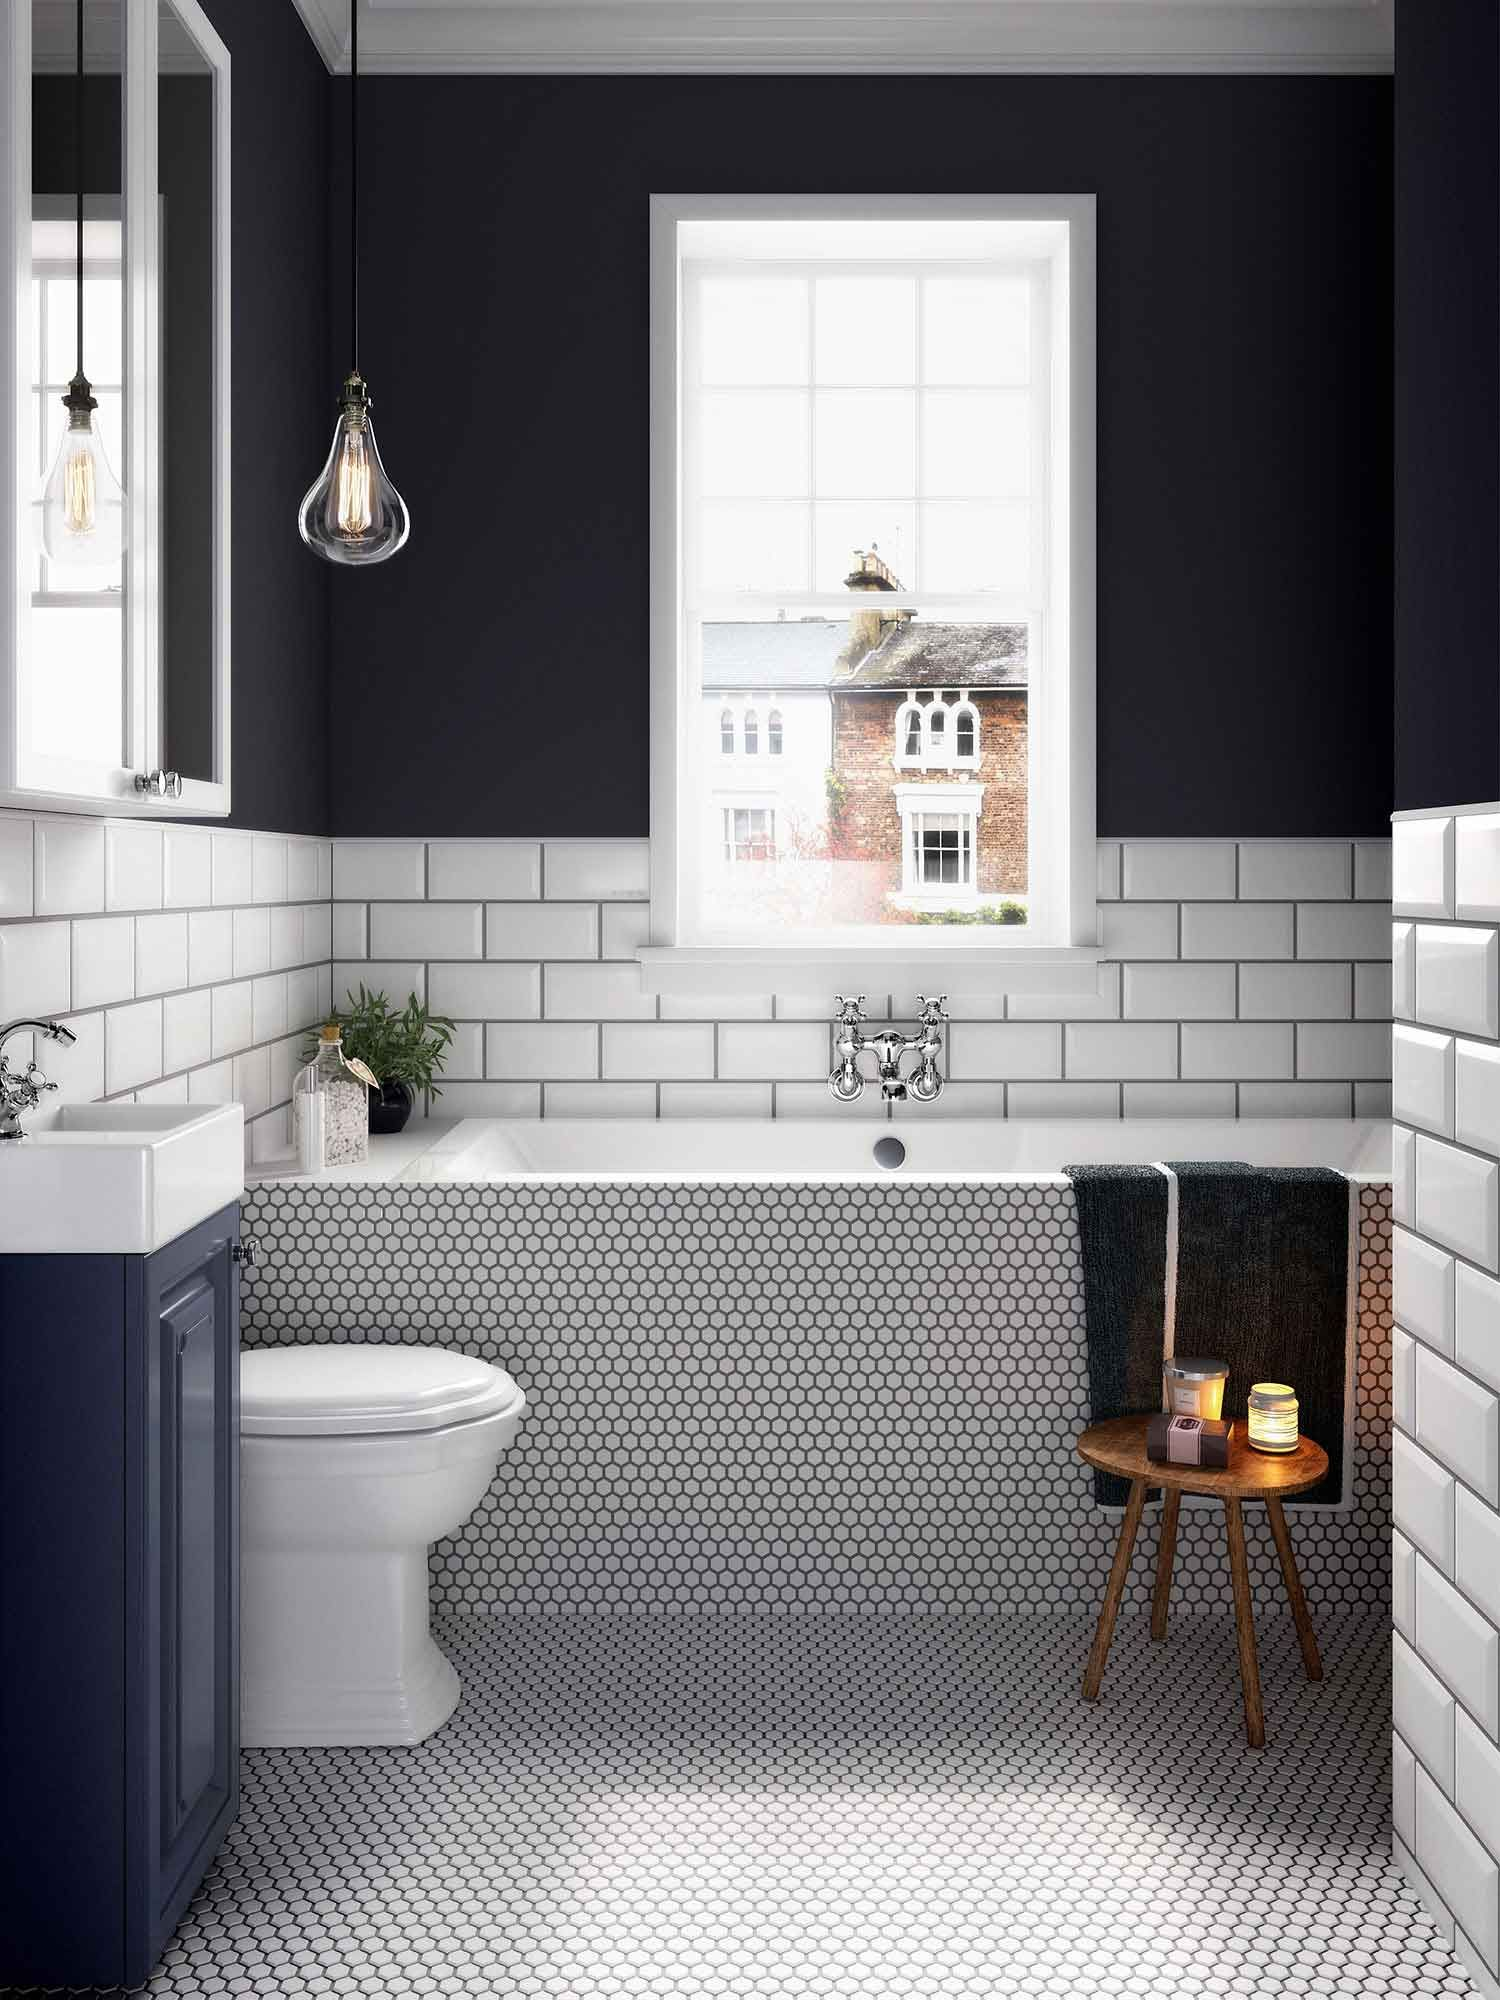 . A well decorated bathroom can do wonders to an interior design